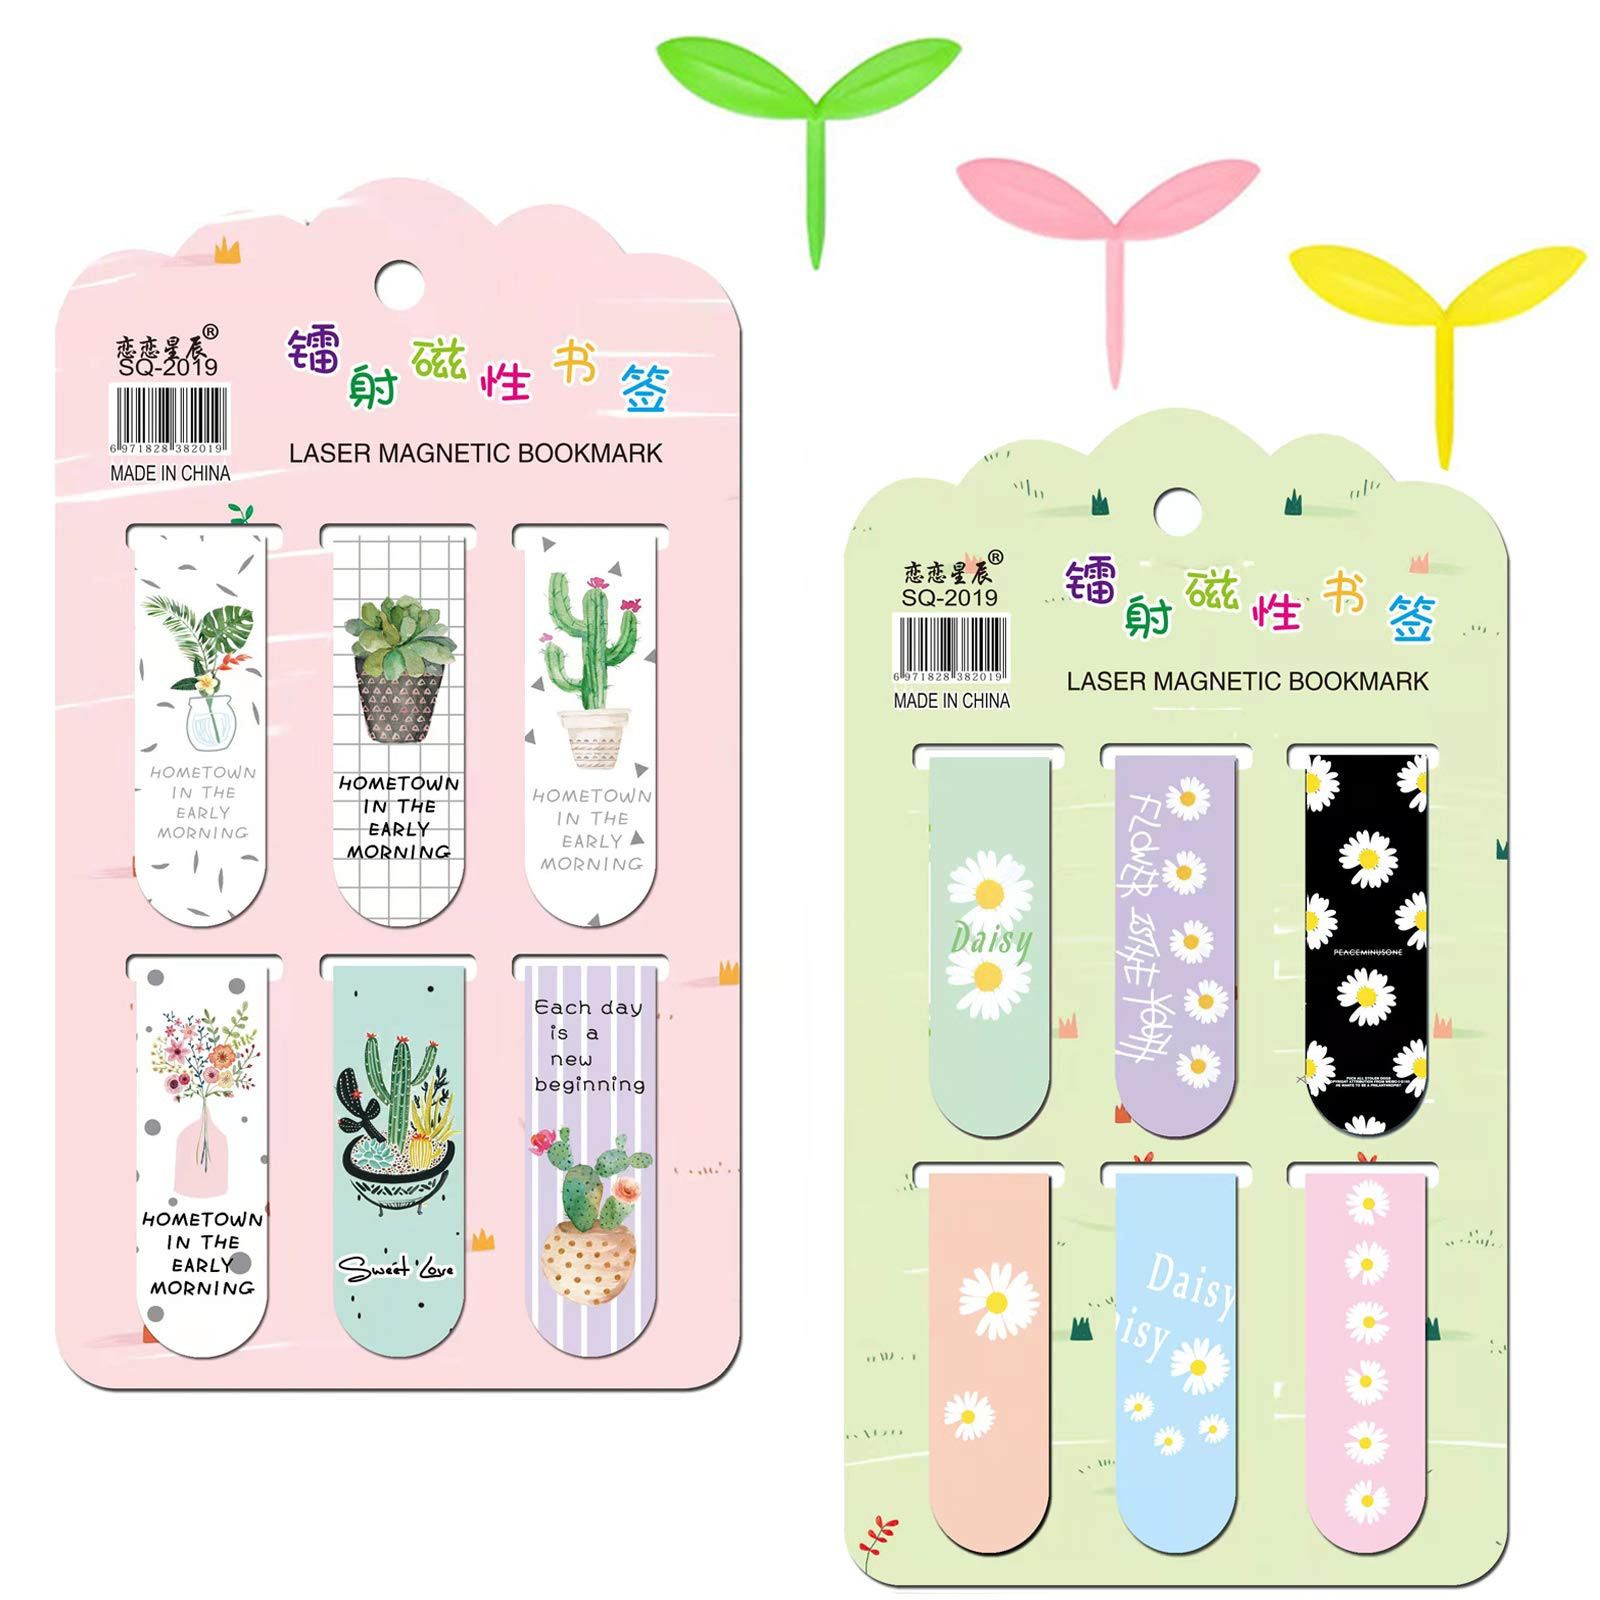 scurry 12 Pieces Magnetic Bookmarks Magnet Page Markers, Bookmarks for Books with Daisies and Desert Plants Motifs, 3 Pieces Sprout Bookmarks(Green Yellow Pink)